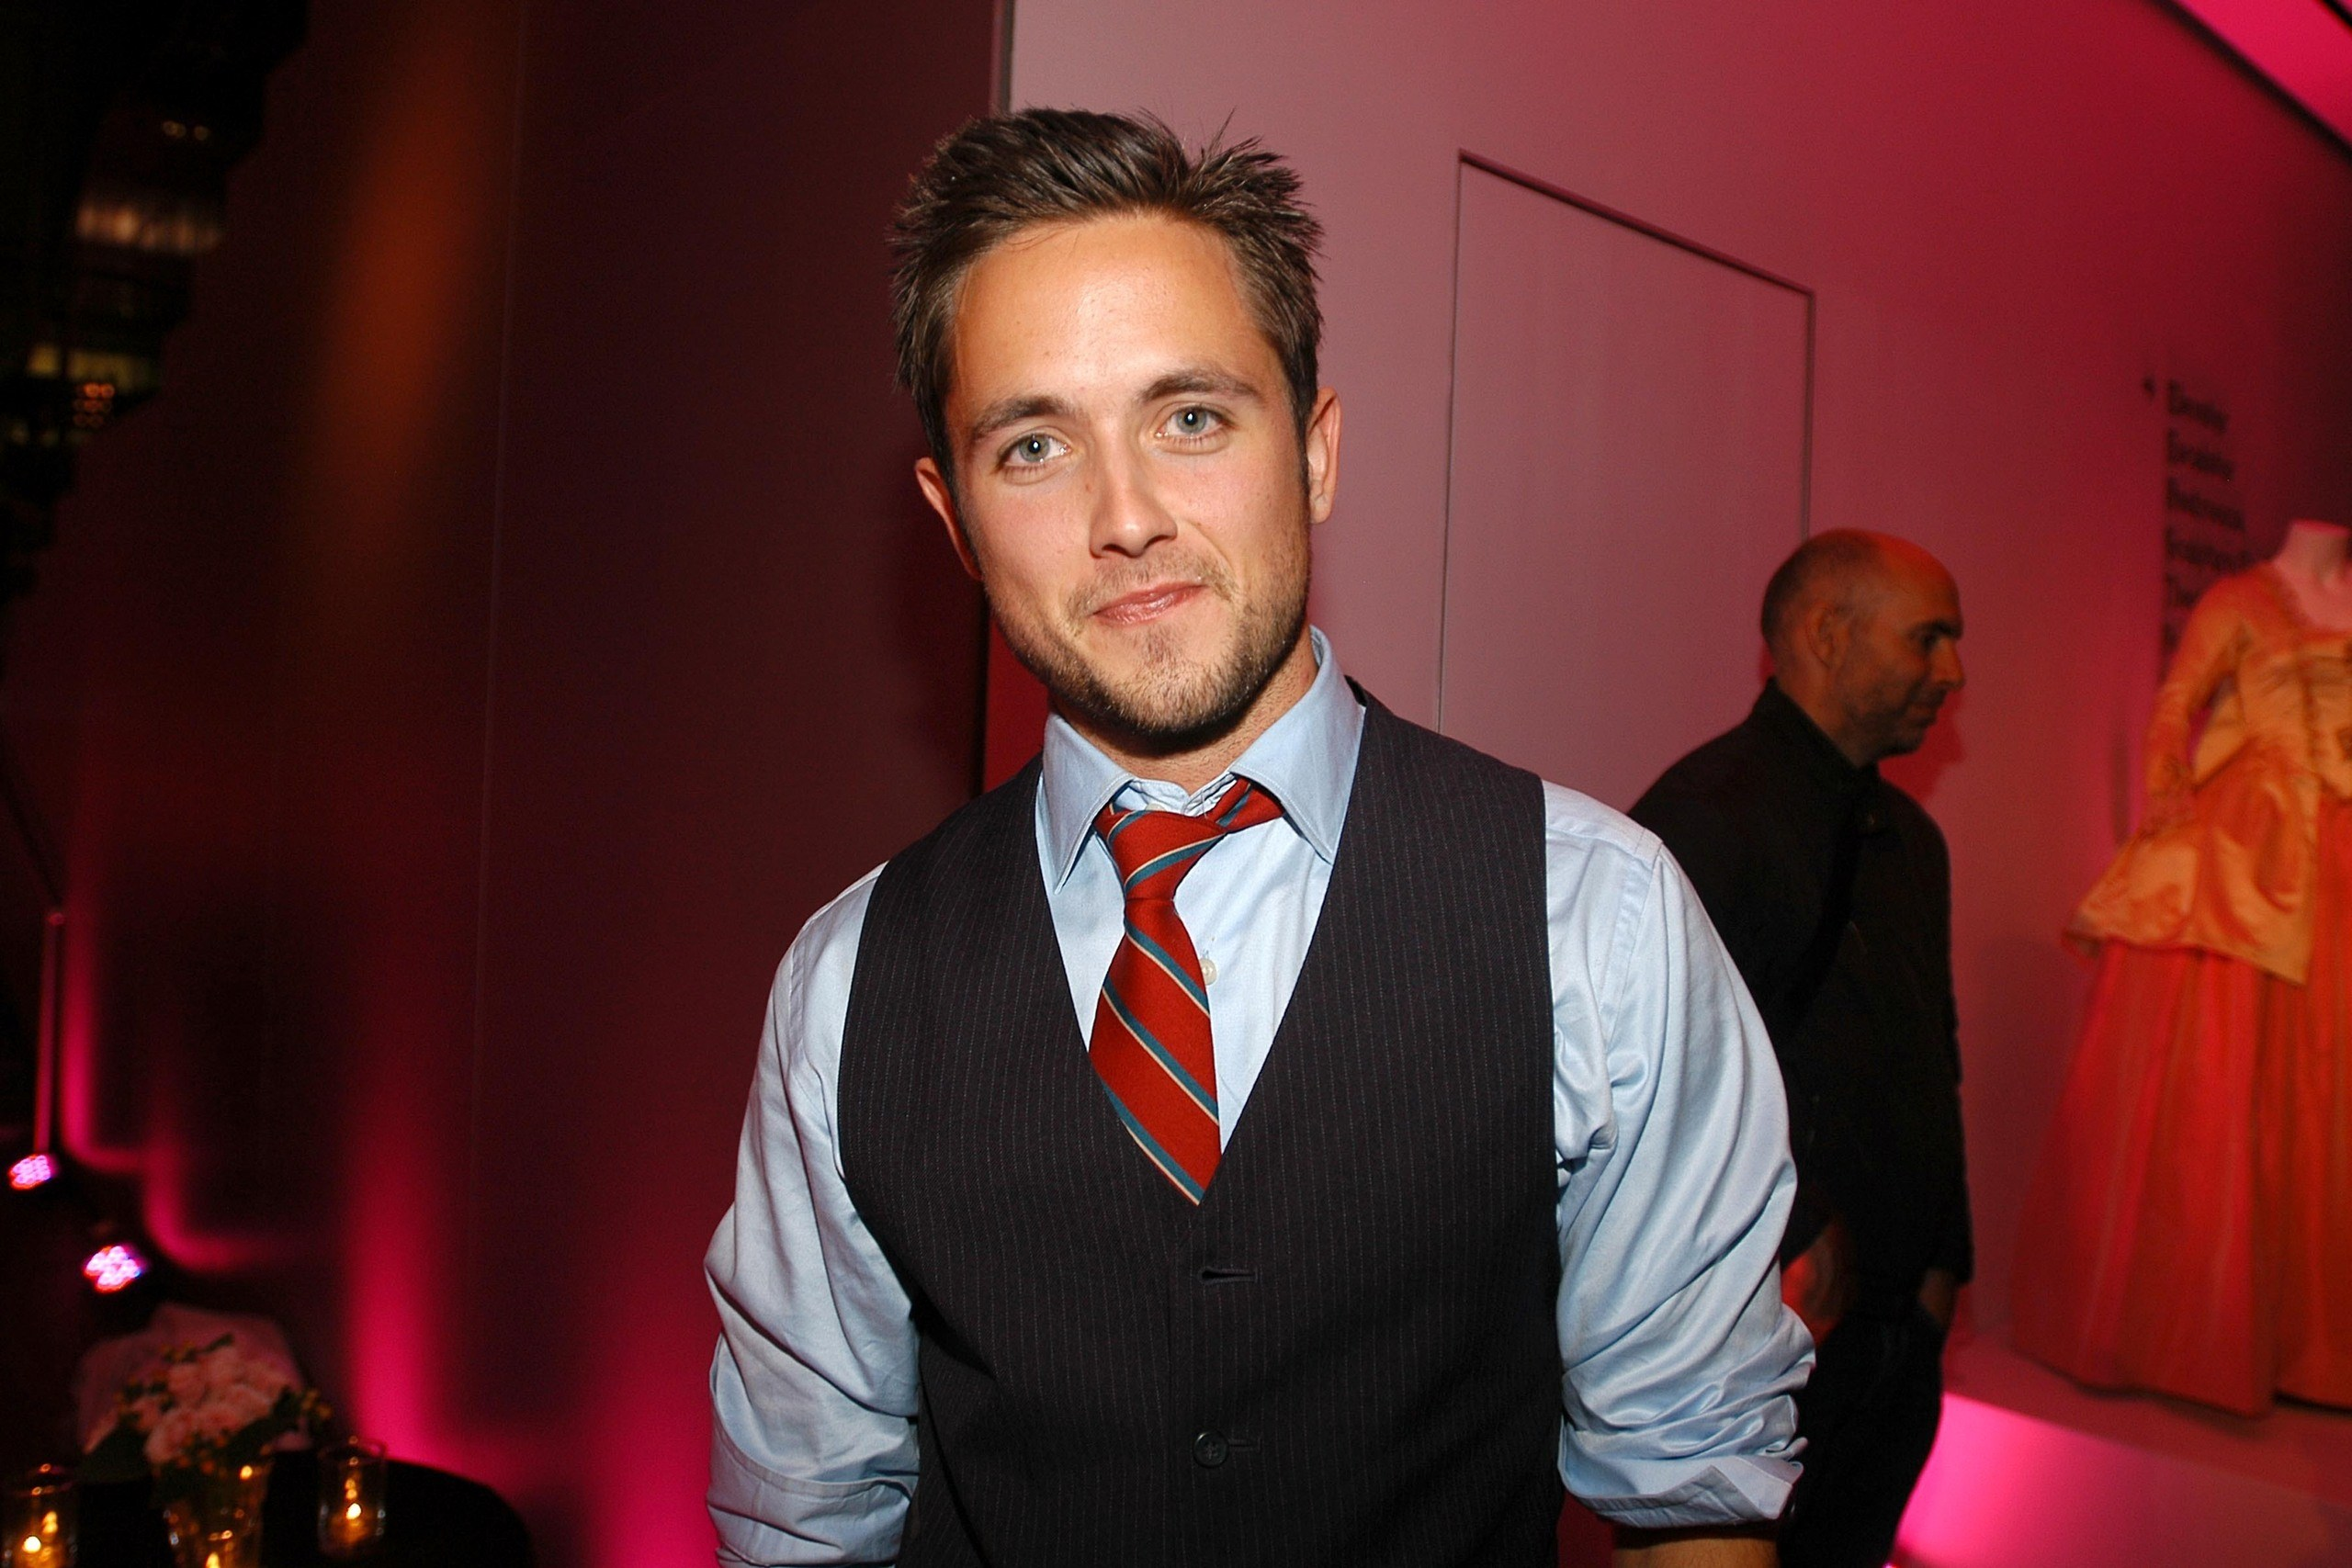 justin chatwin celebrity wallpaper background 57421